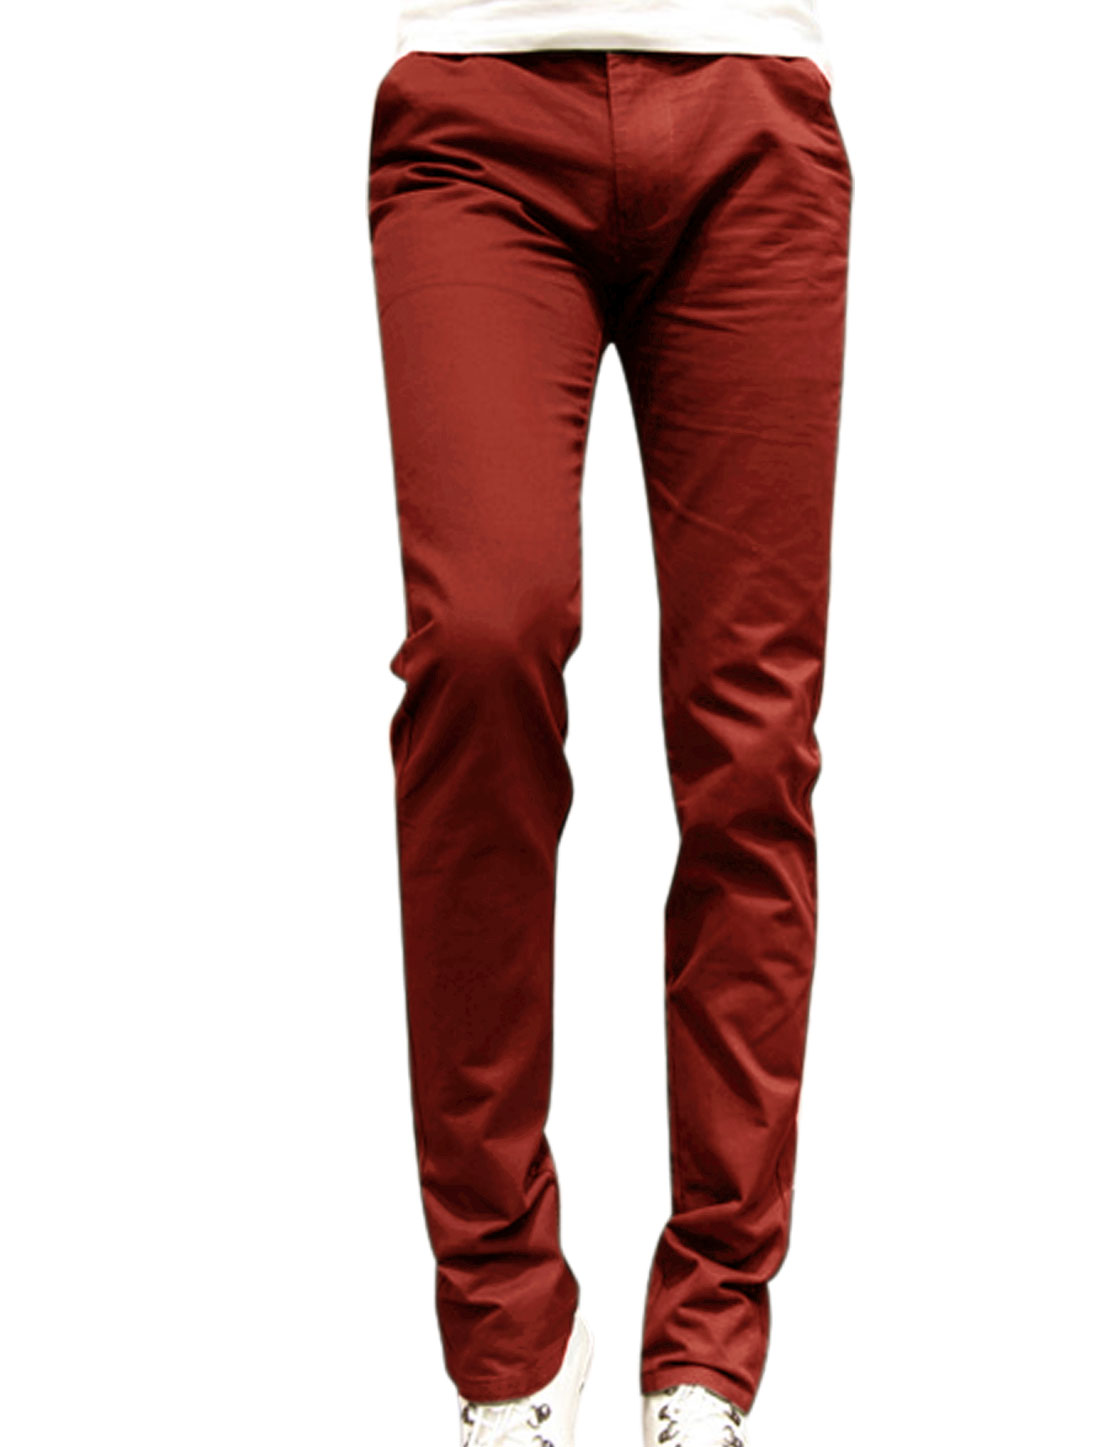 Mid Rise Belt Loop Design Four Pocket Red Straight Leg Pants for Man W30